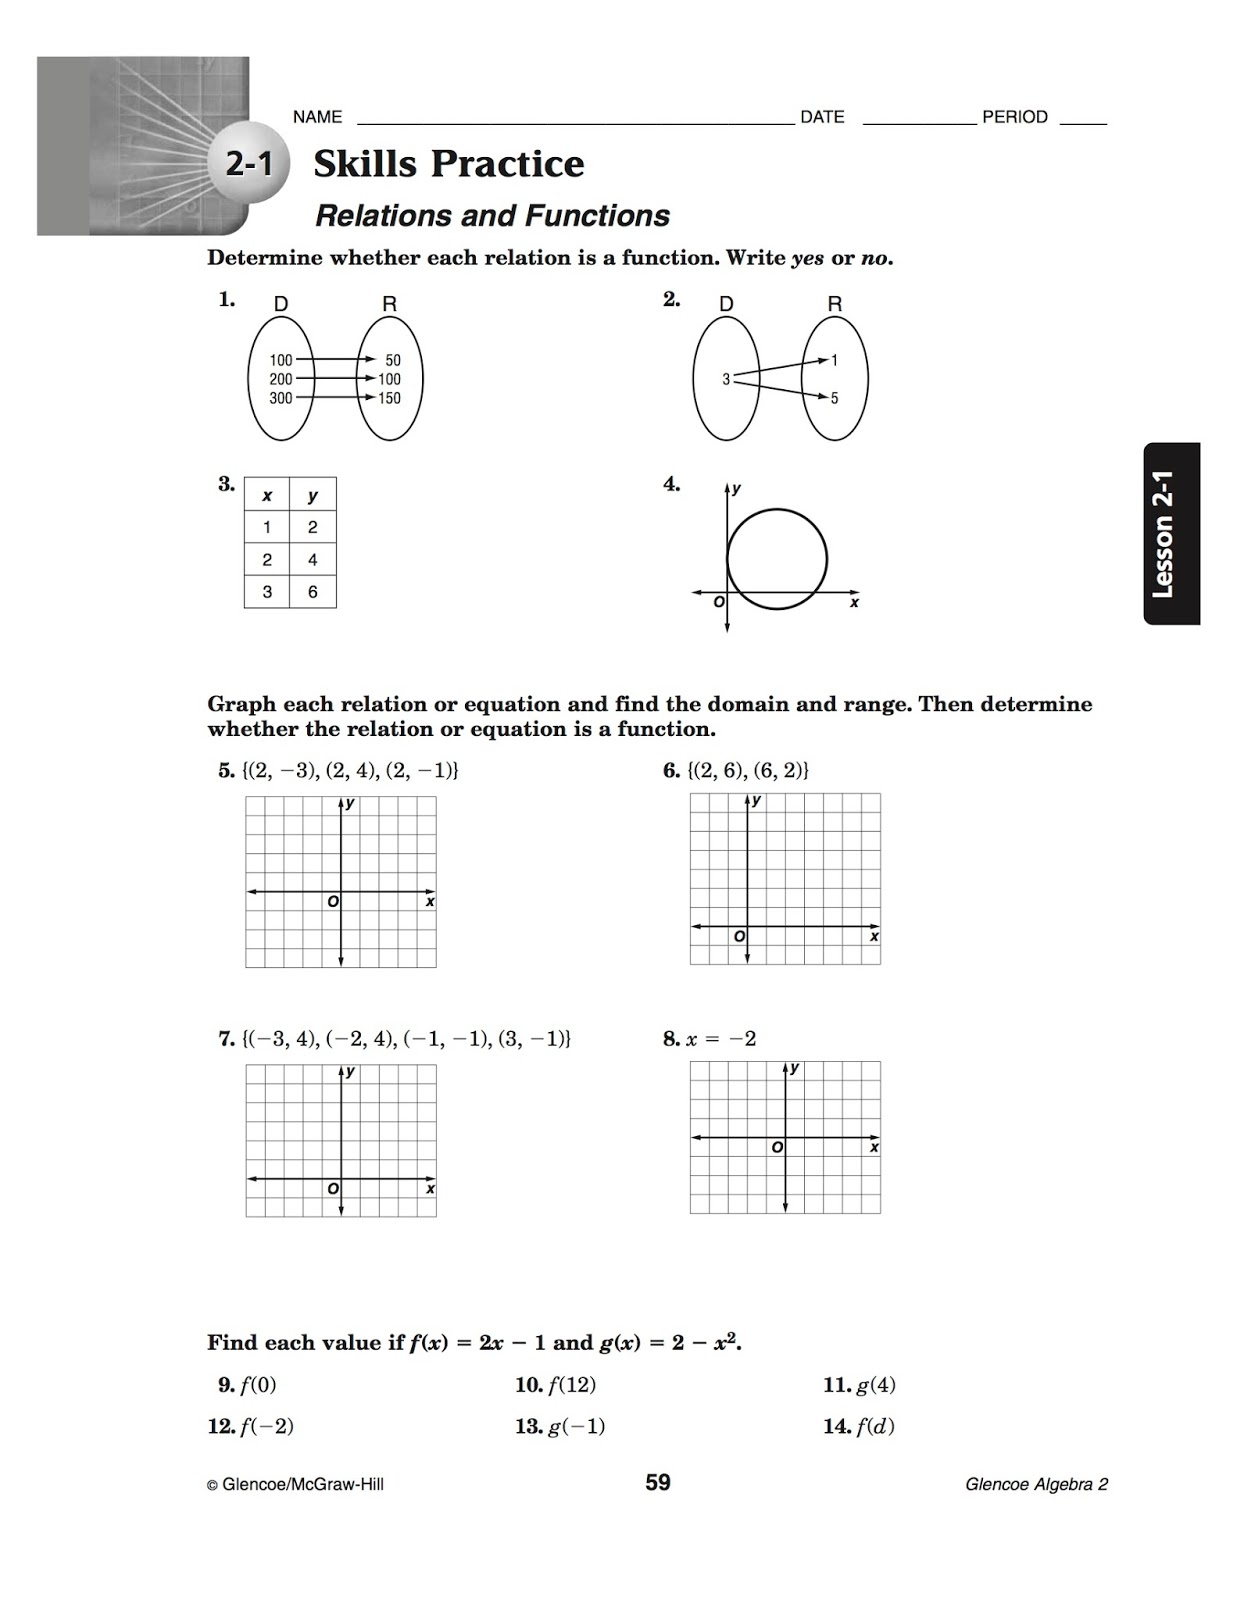 Printables Linear Functions Worksheet Algebra 2 bacs algebra 2 complete homework 1 skills practice worksheet page 59 remember that a function each value of x can only produce one y vertical line test